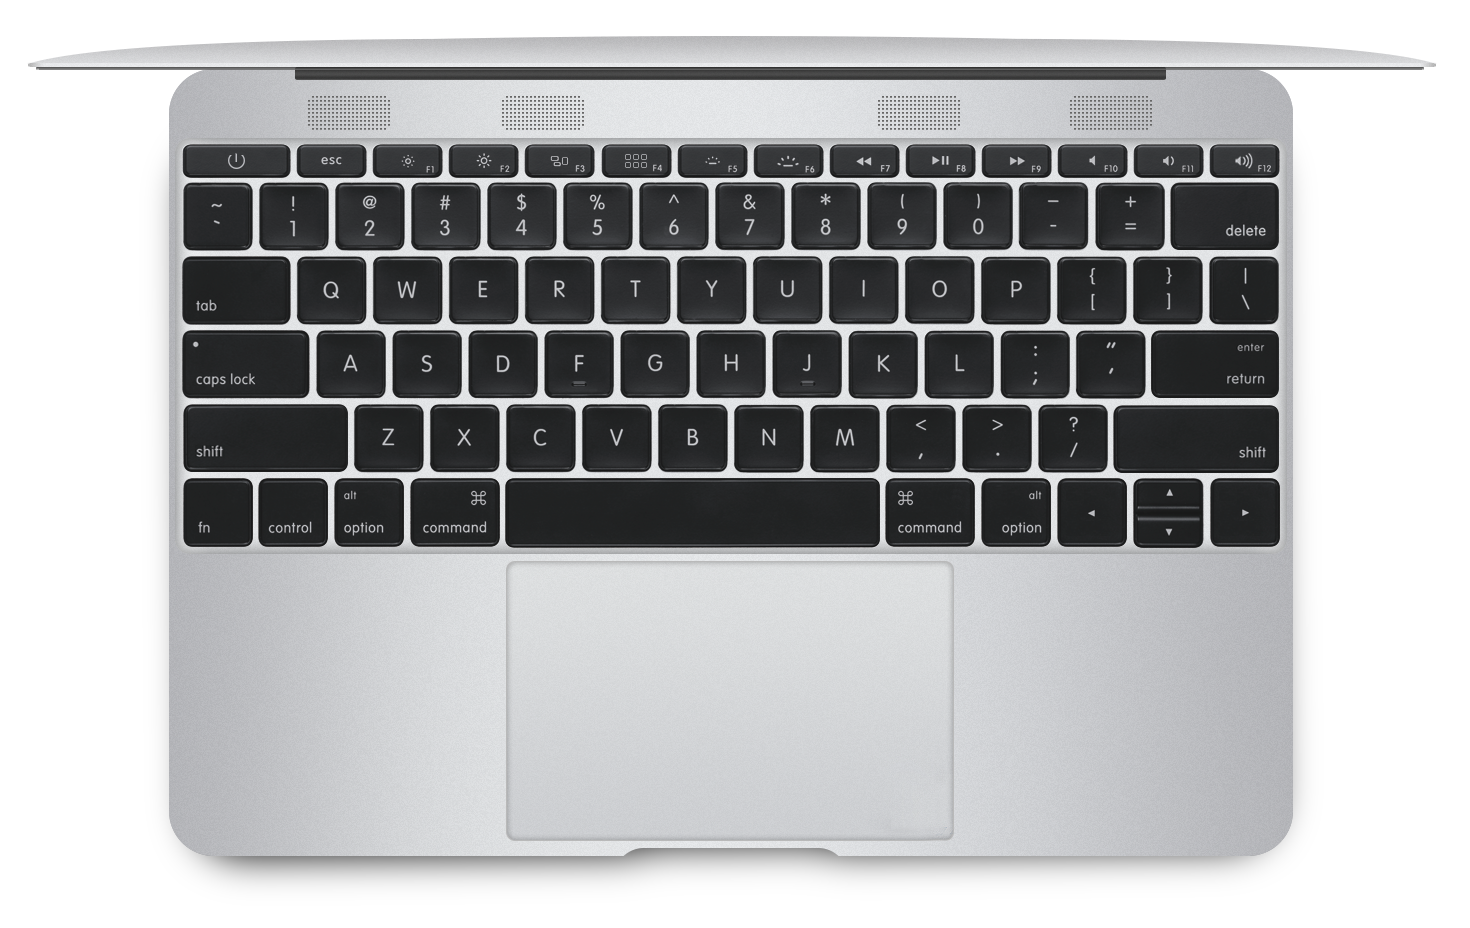 http://www.macfreak.nl/modules/news/images/zArt.MacBook-12inch-2015-bovenaanzicht.png